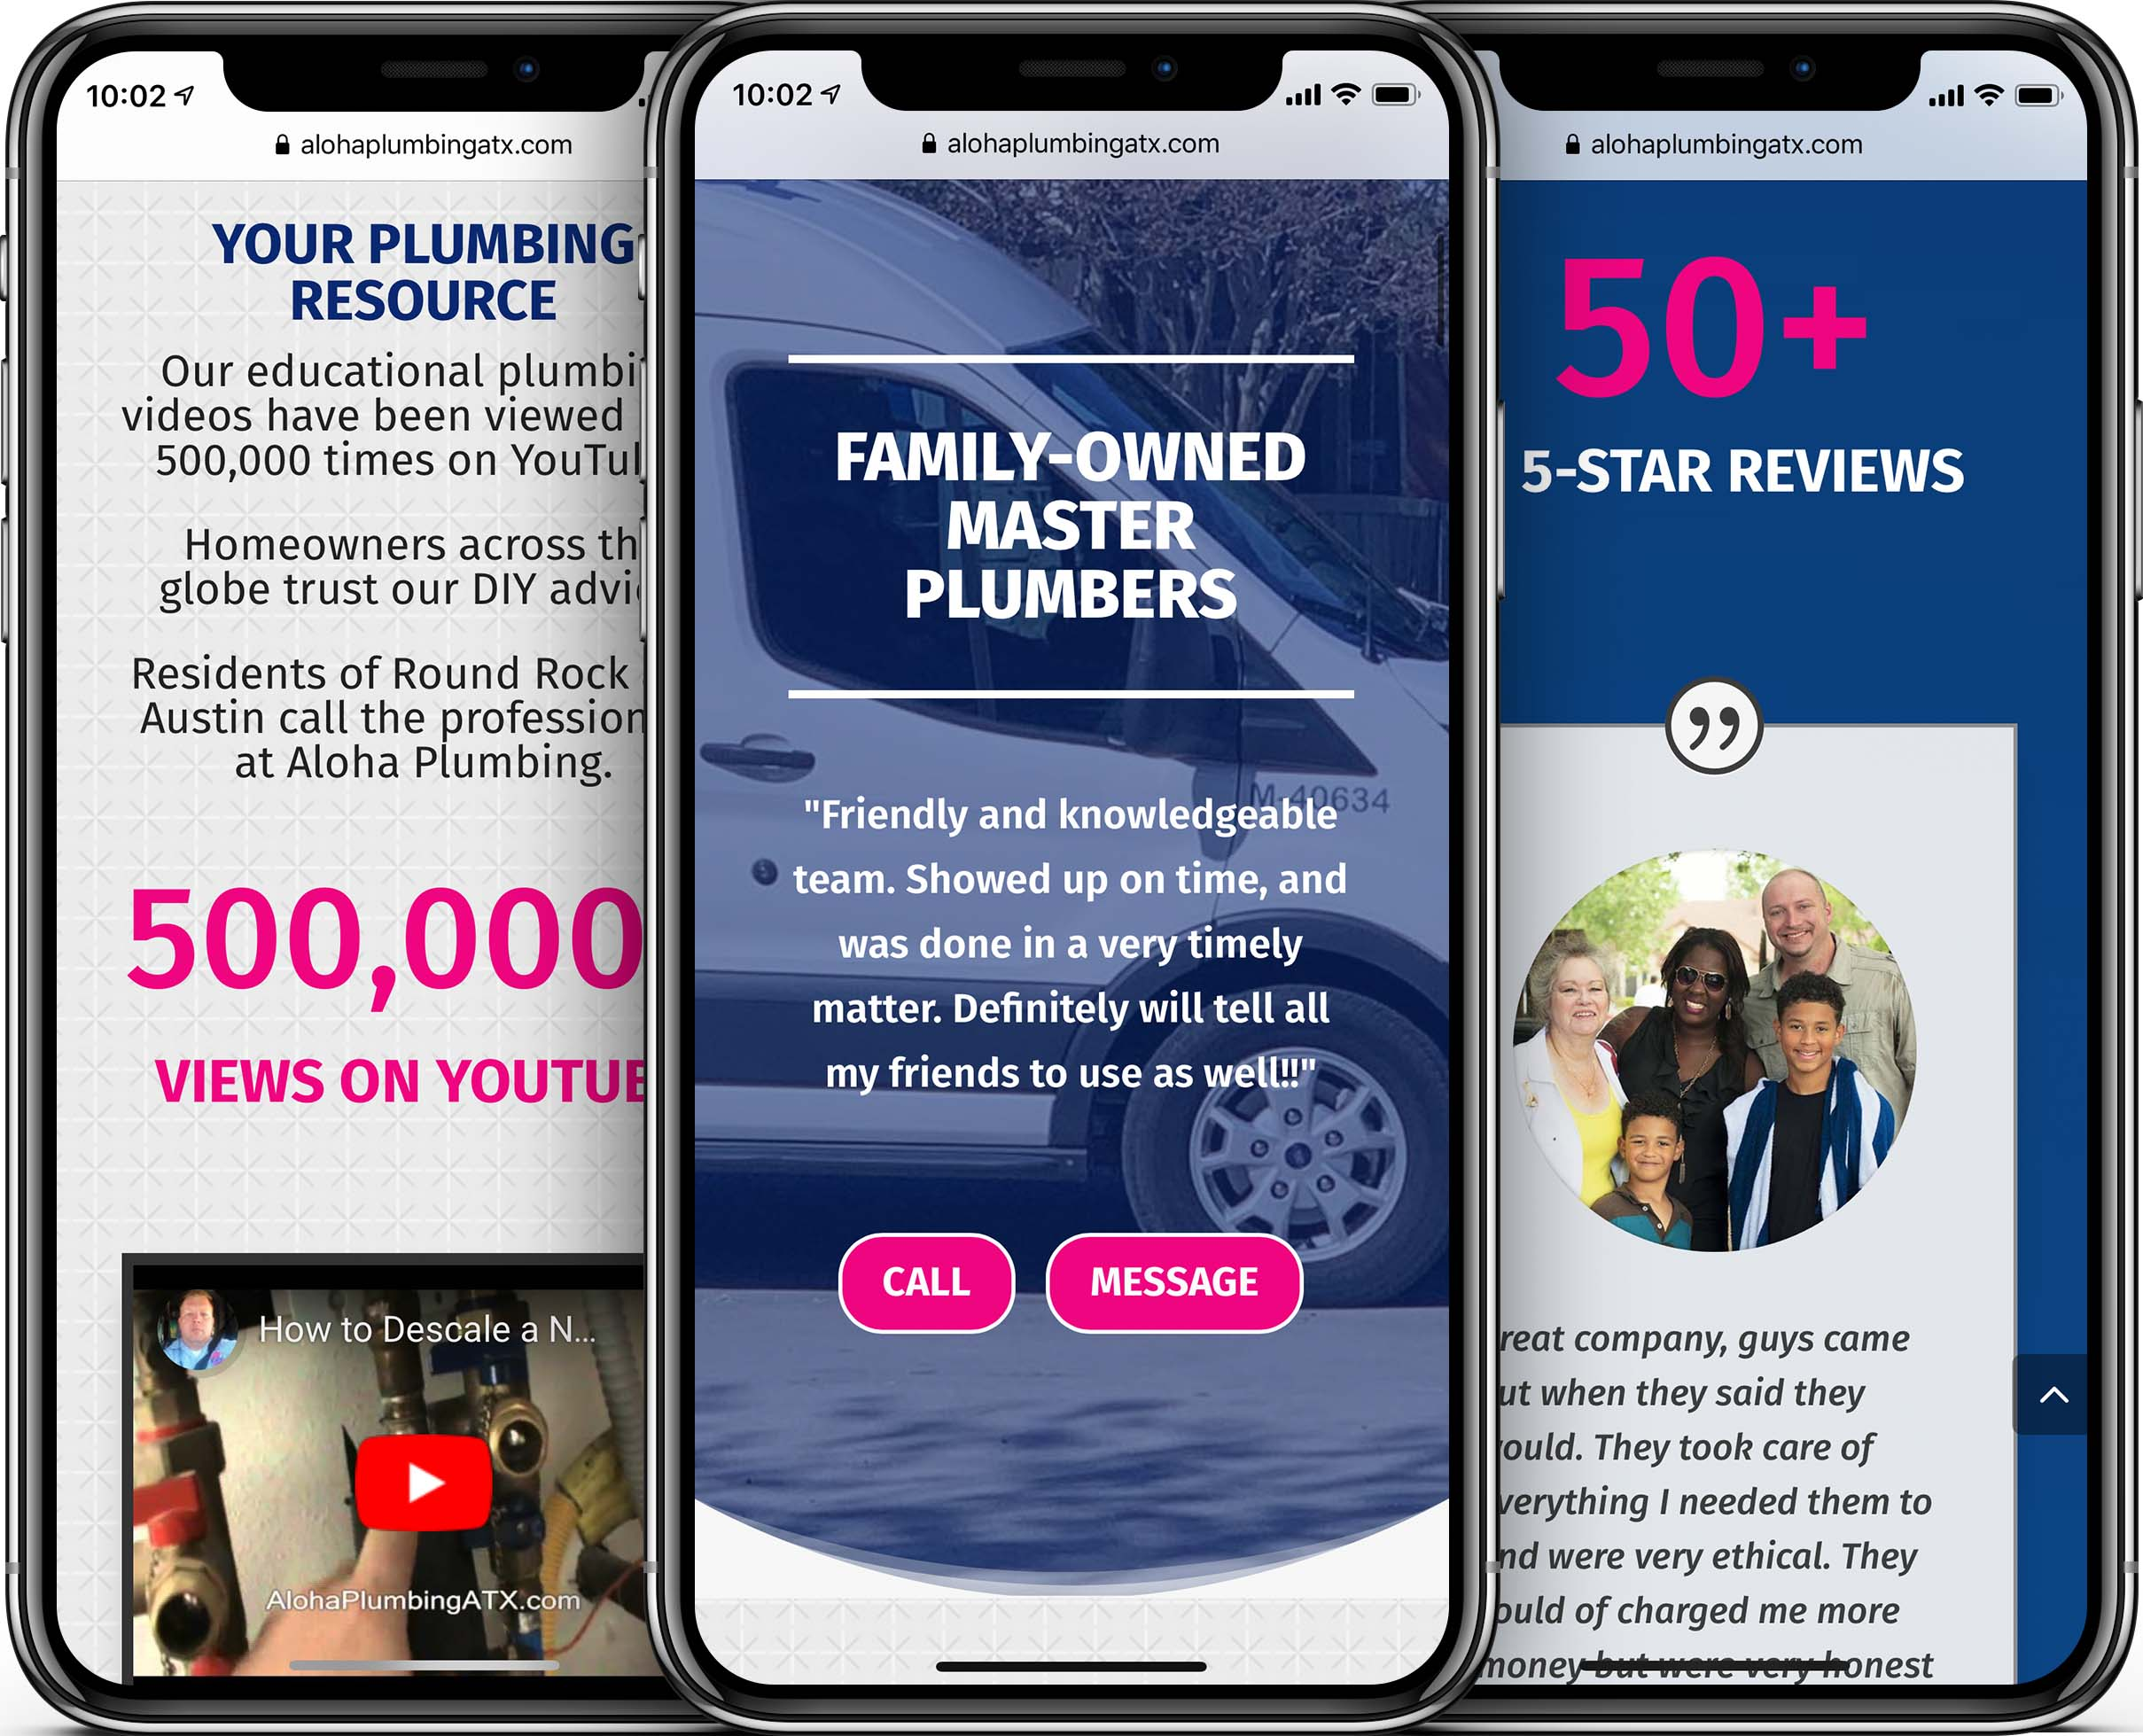 Aloha Plumbing Mobile-Friendly Web Design